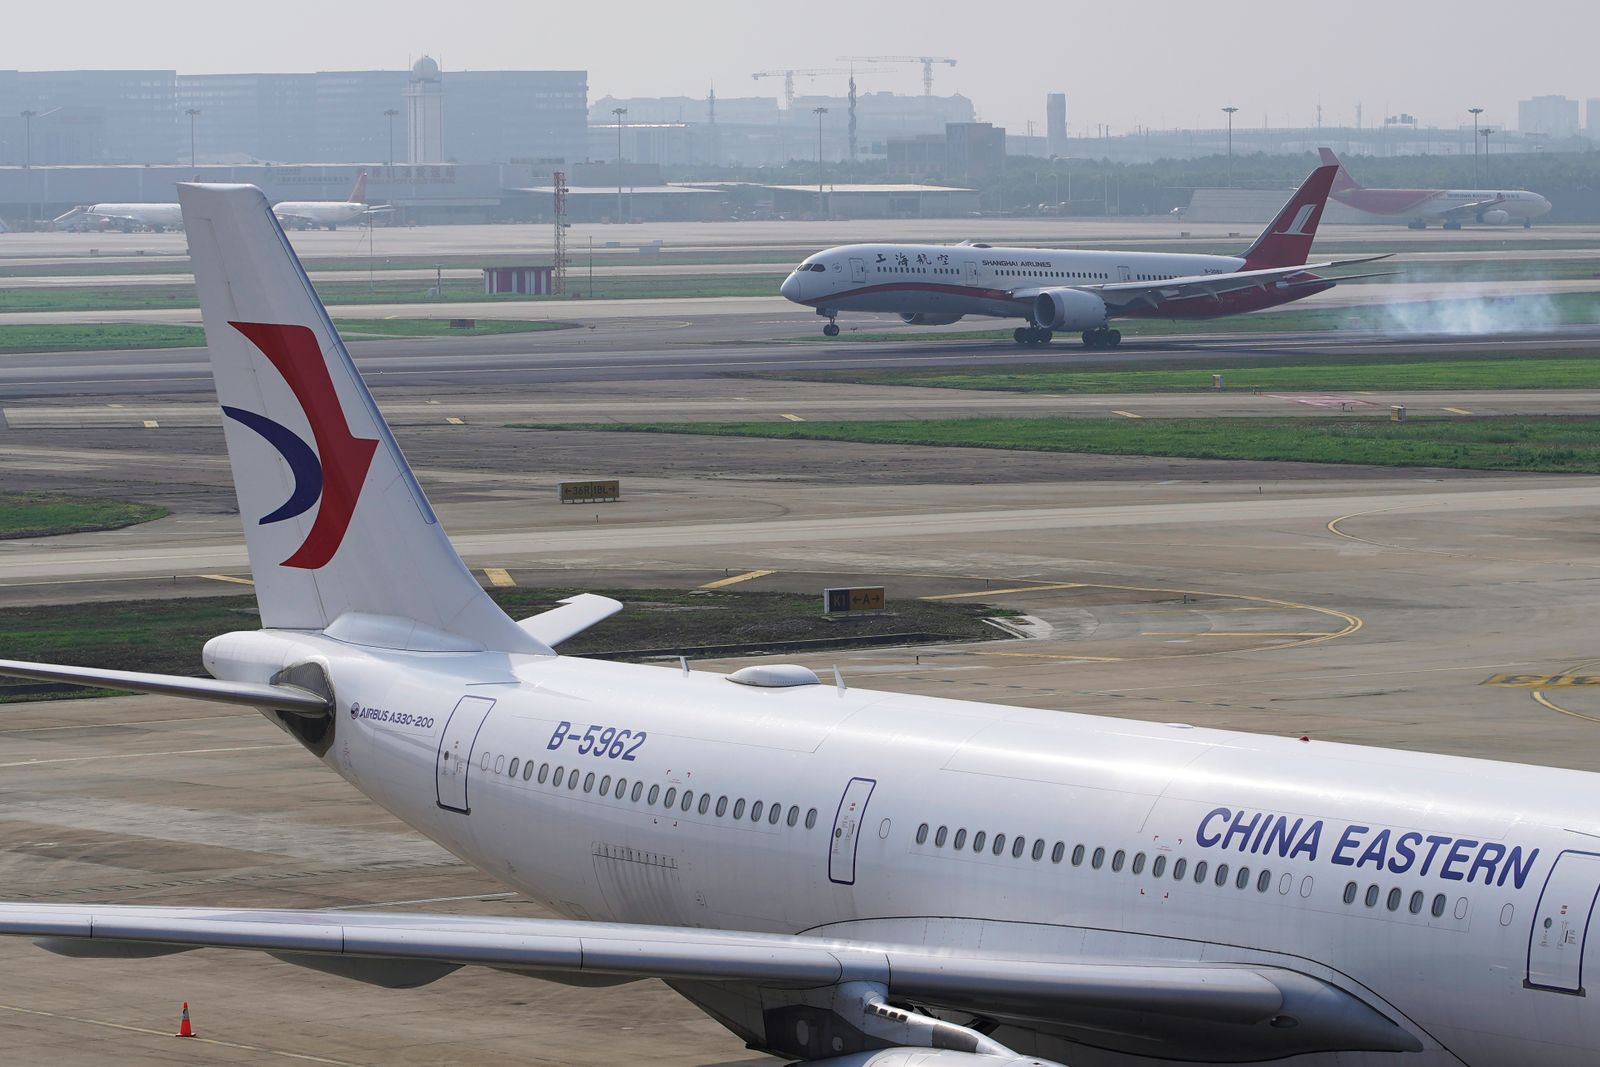 A China Eastern Airlines aircraft and a Shanghai Airlines aircraft are seen in Hongqiao International Airport in Shanghai